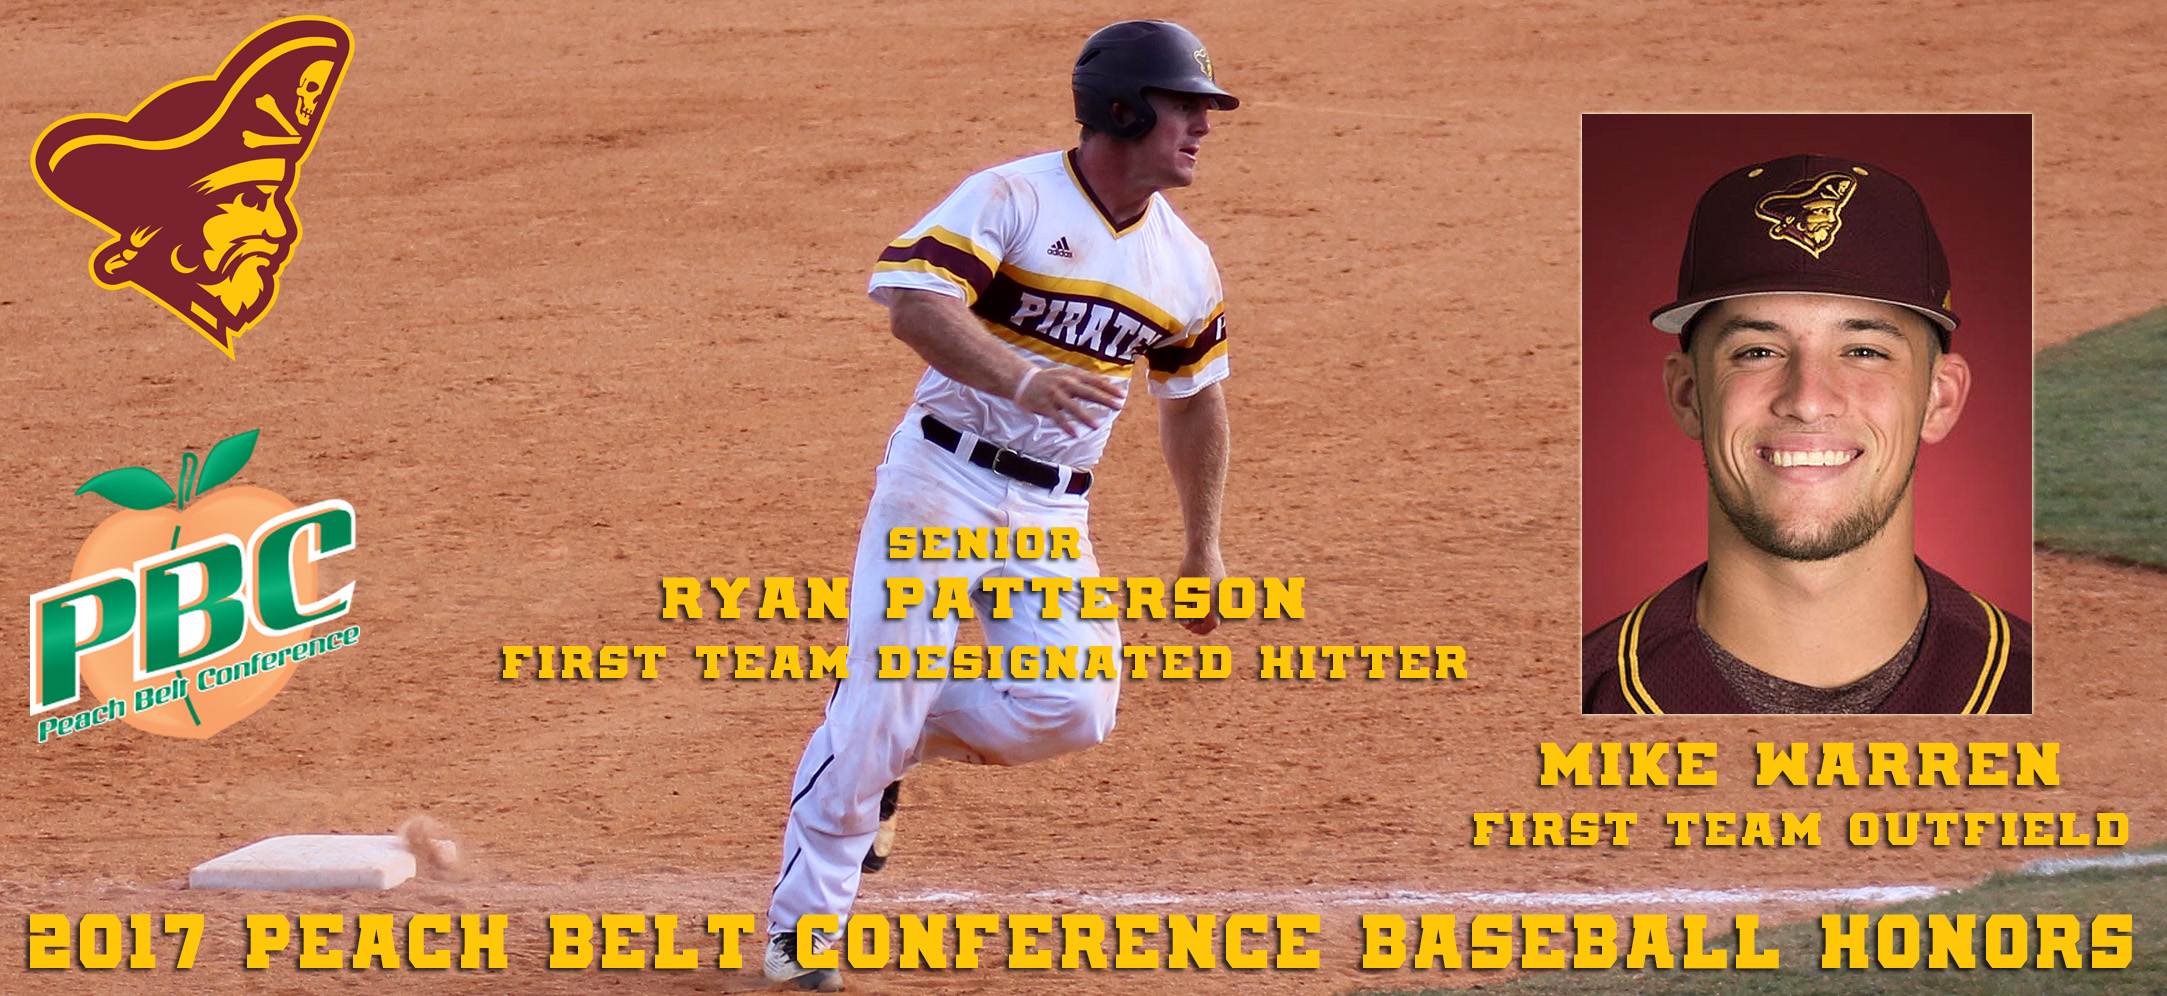 Two Pirates Earn First Team All-Peach Belt Conference Baseball Honors